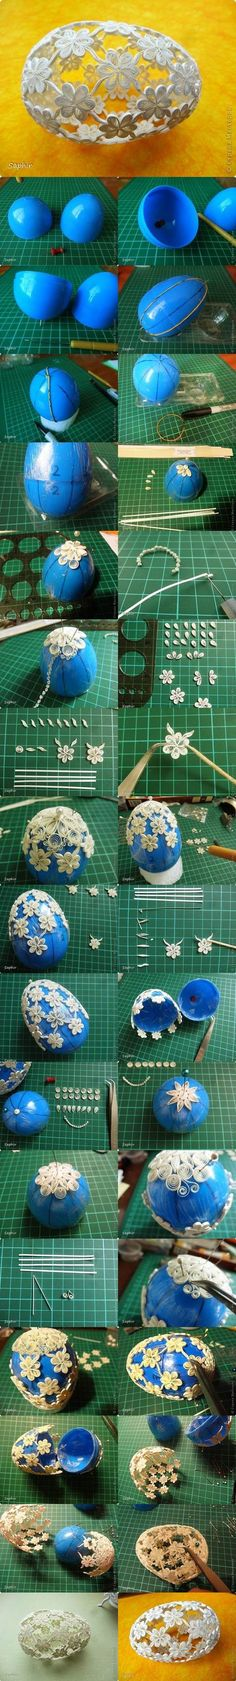 The effect of the quilling flowers in an egg shape is really special. This is a fantastic project to DIY Easter egg with Quilling Flower Decoration. Quilling Tutorial, Diy Quilling, Quilling Paper Craft, Quilling Patterns, Quilling Designs, Quilling Instructions, Egg Crafts, Easter Crafts, Easter Ideas